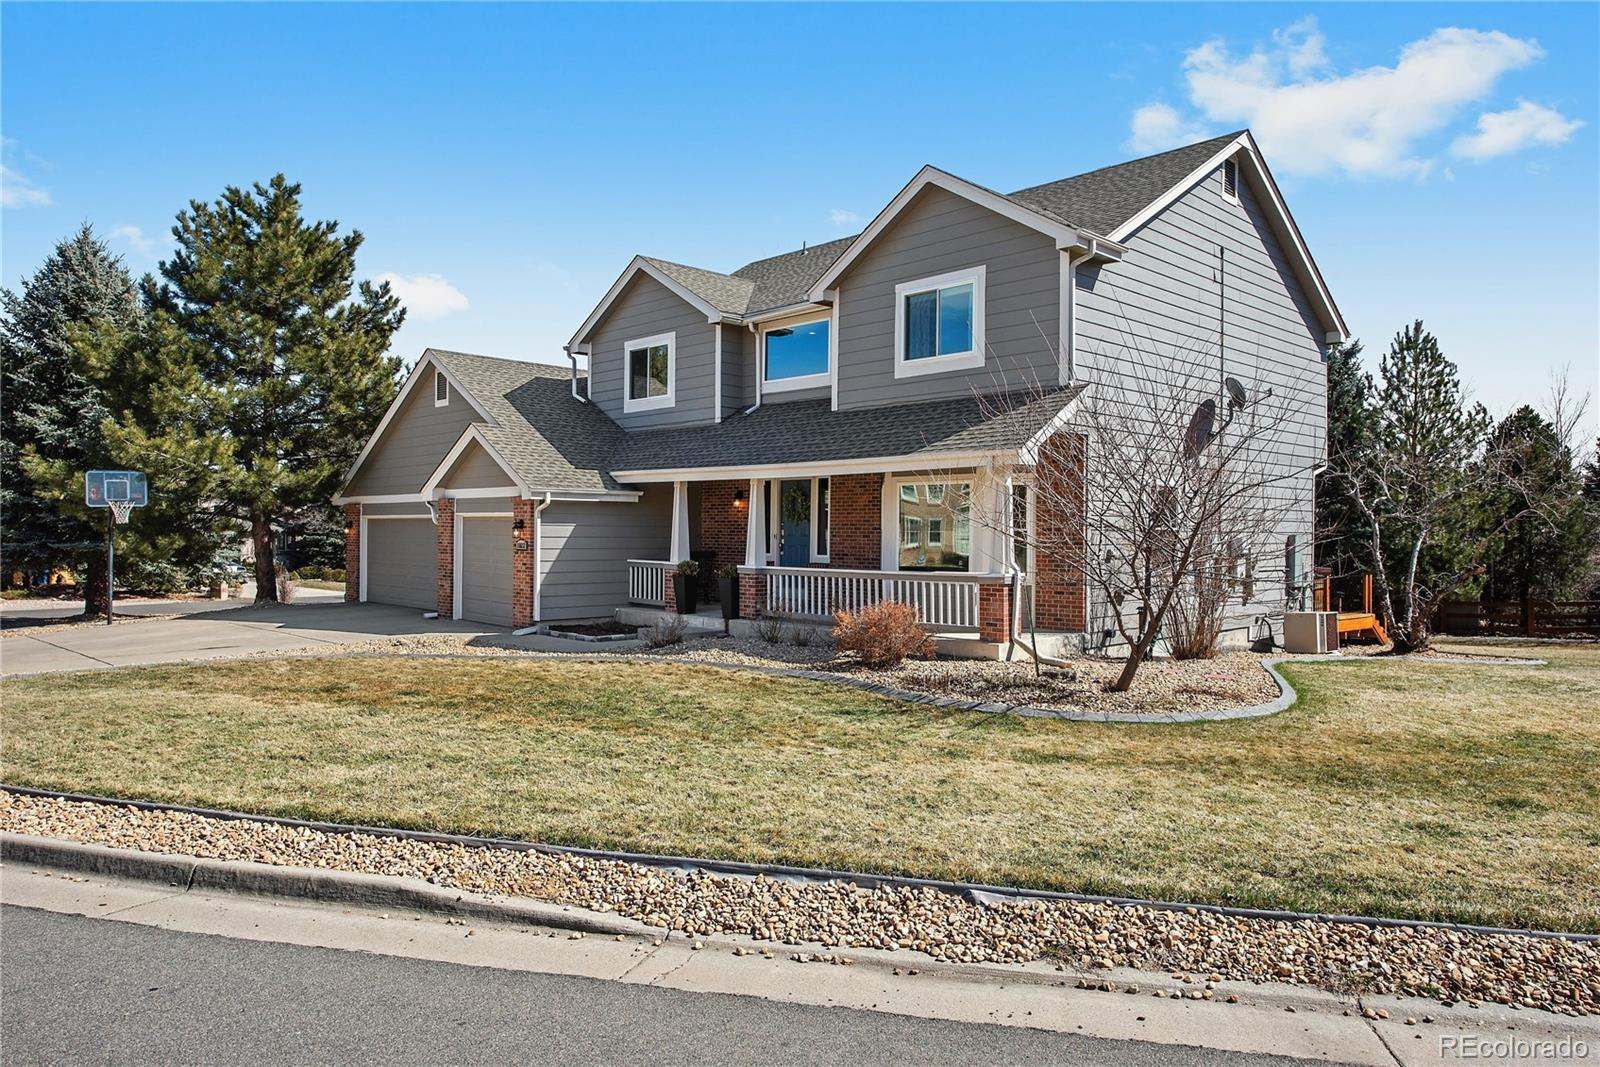 MLS# 7778150 - 1 - 16652 W 55th Place, Golden, CO 80403